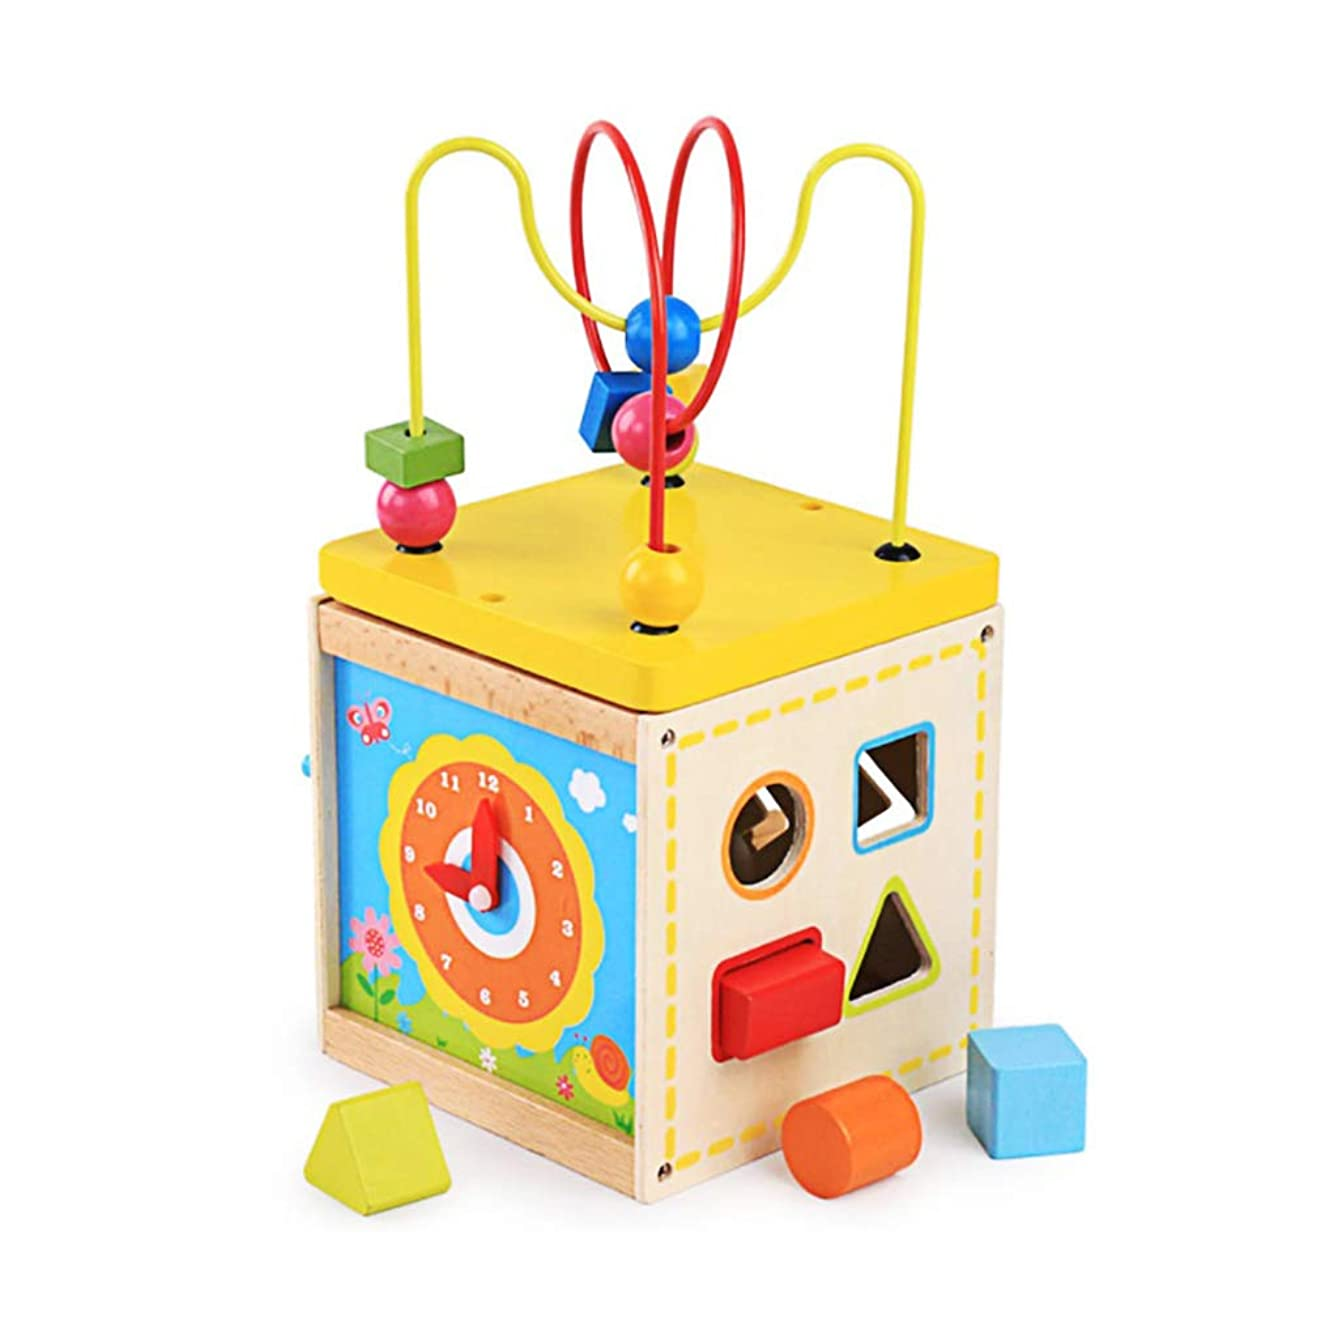 KUKALE Wood Maze Game Shapes Colors Match Case Kids Training Development Exercise Tool for Kids